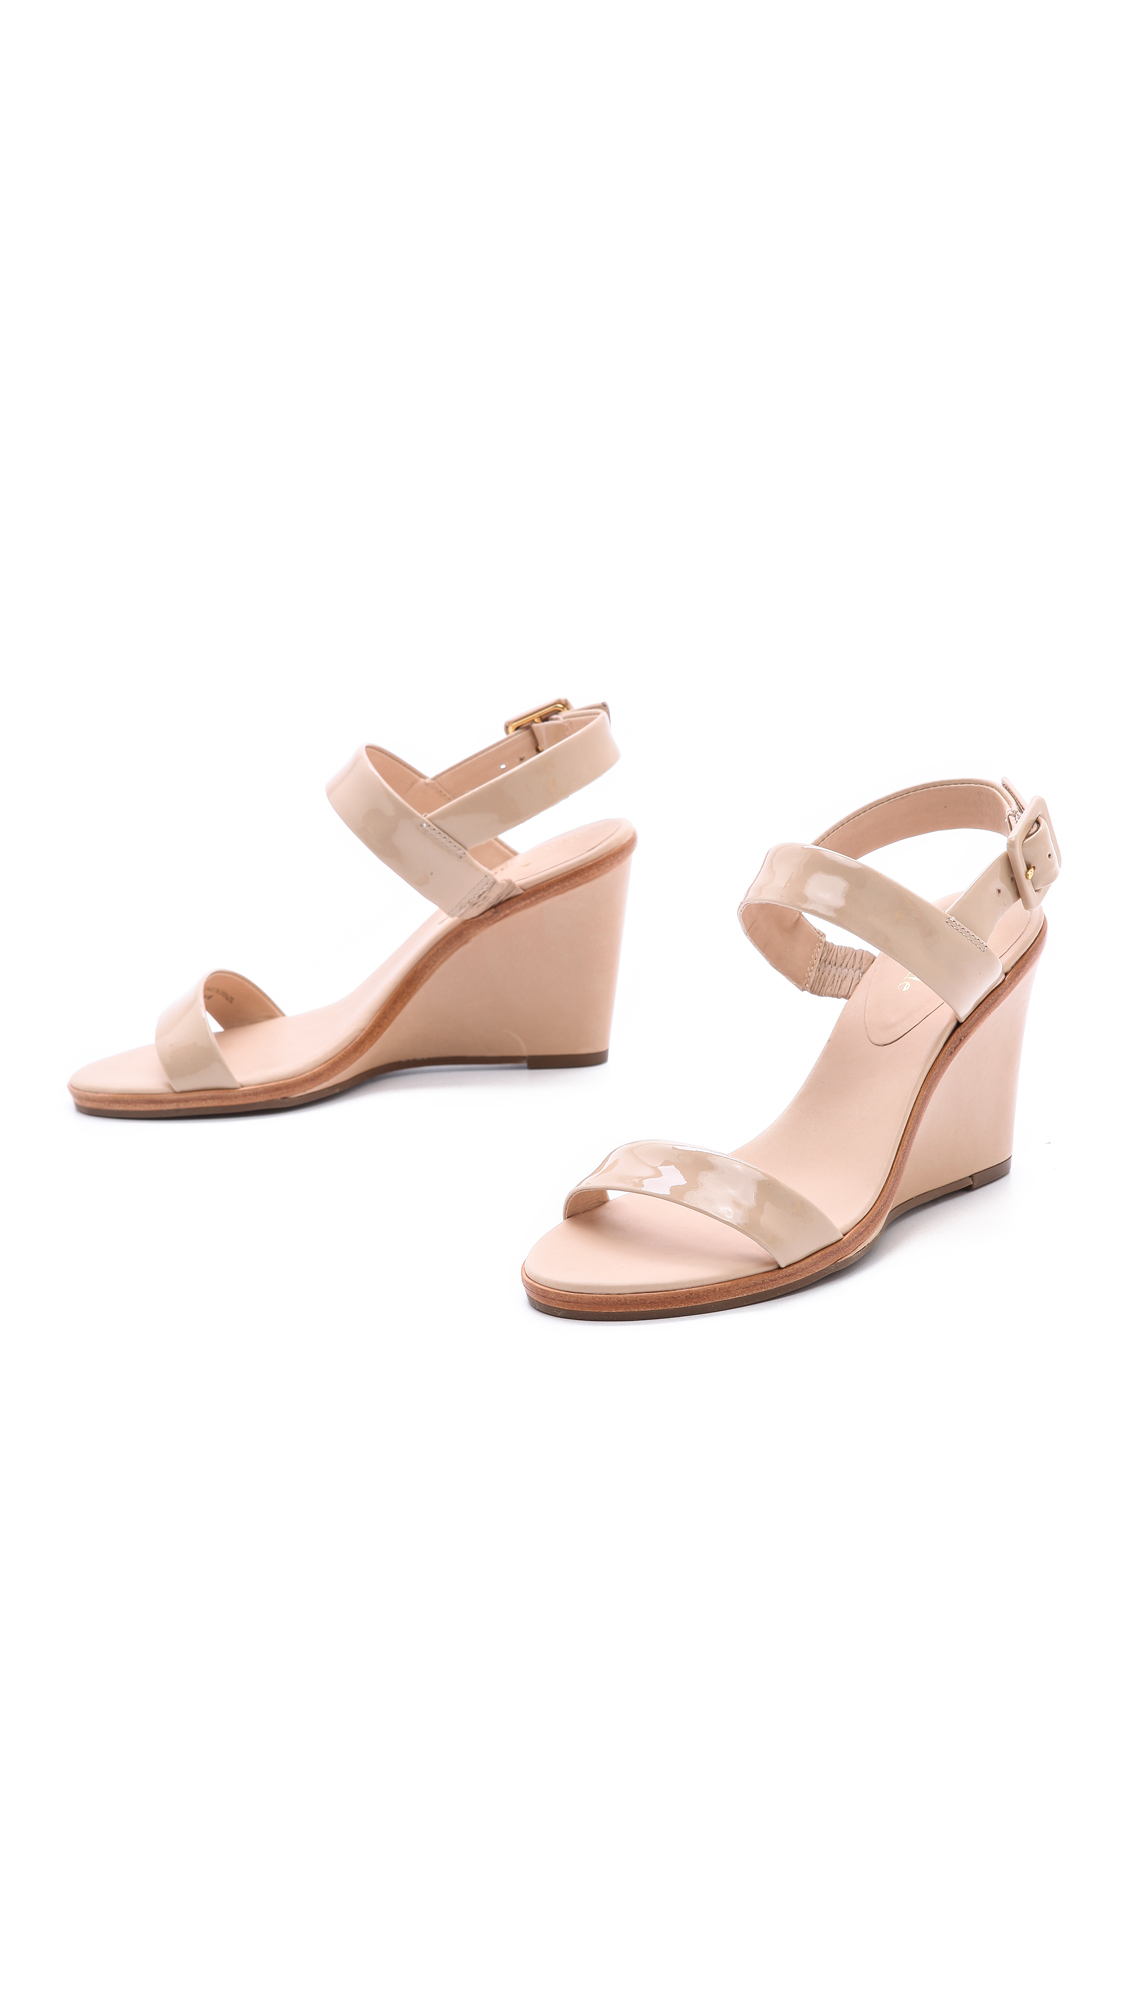 c8b9b49f5b8c Lyst - Kate Spade Nice Wedge Sandals Powder in Natural